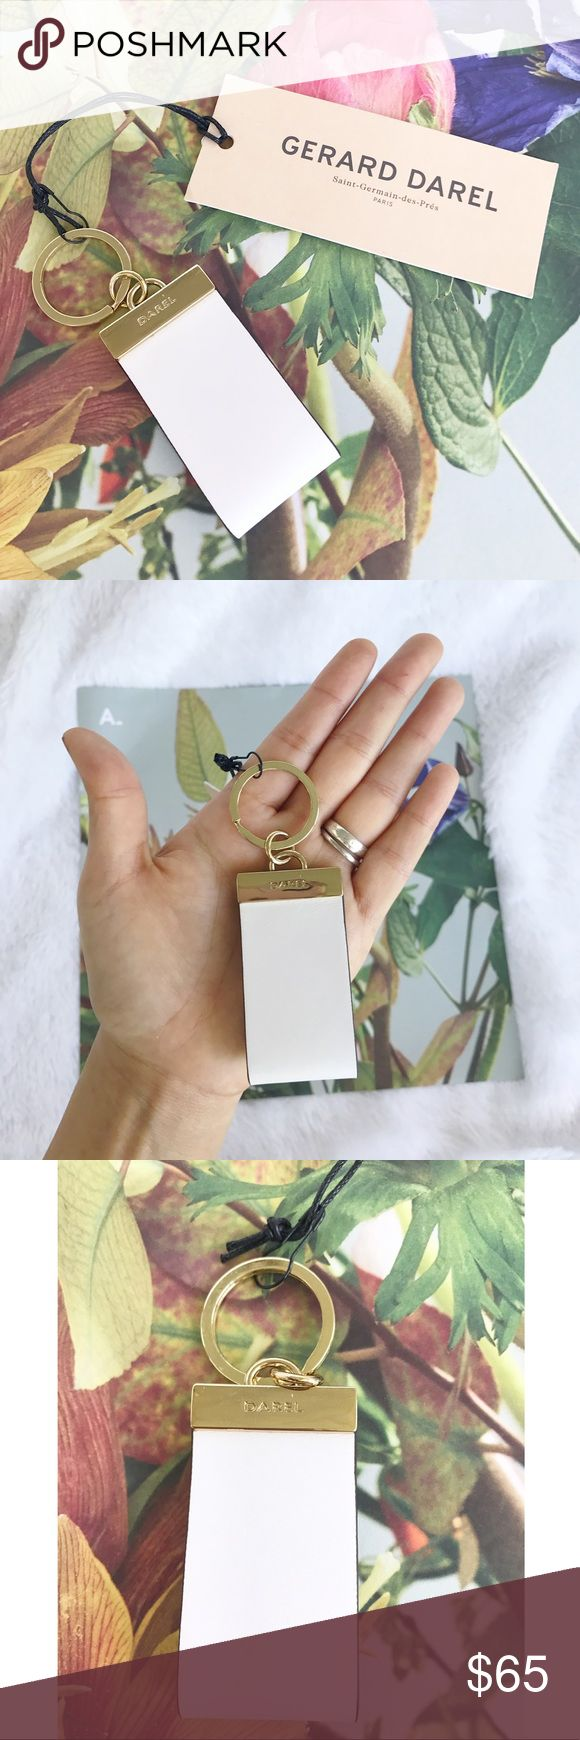 "NWT Gerard Darel Leather Optic White Keychain NWT Gerard Darel Leather Optic White Keychain! New with tags. Originally $90. Leather. 4"" long (including chain) made in morocco. Gerard Darel Accessories Key & Card Holders"